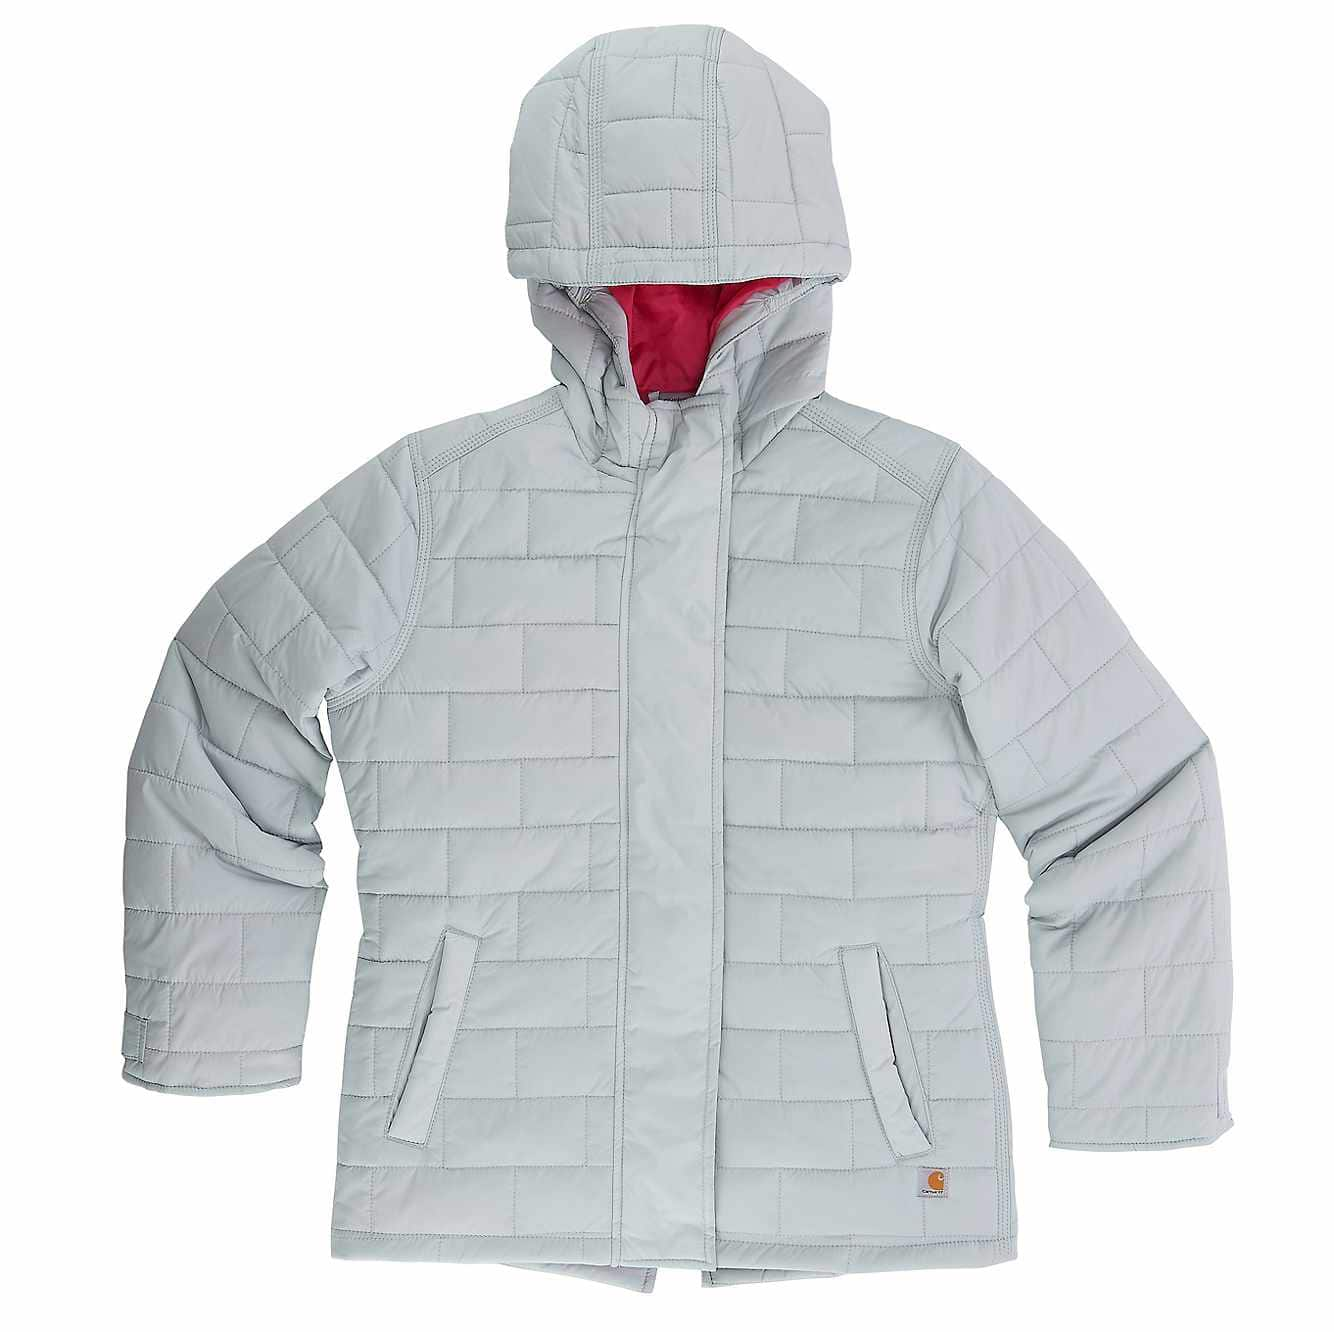 Picture of Amoret Quilted Jacket in Light Onyx